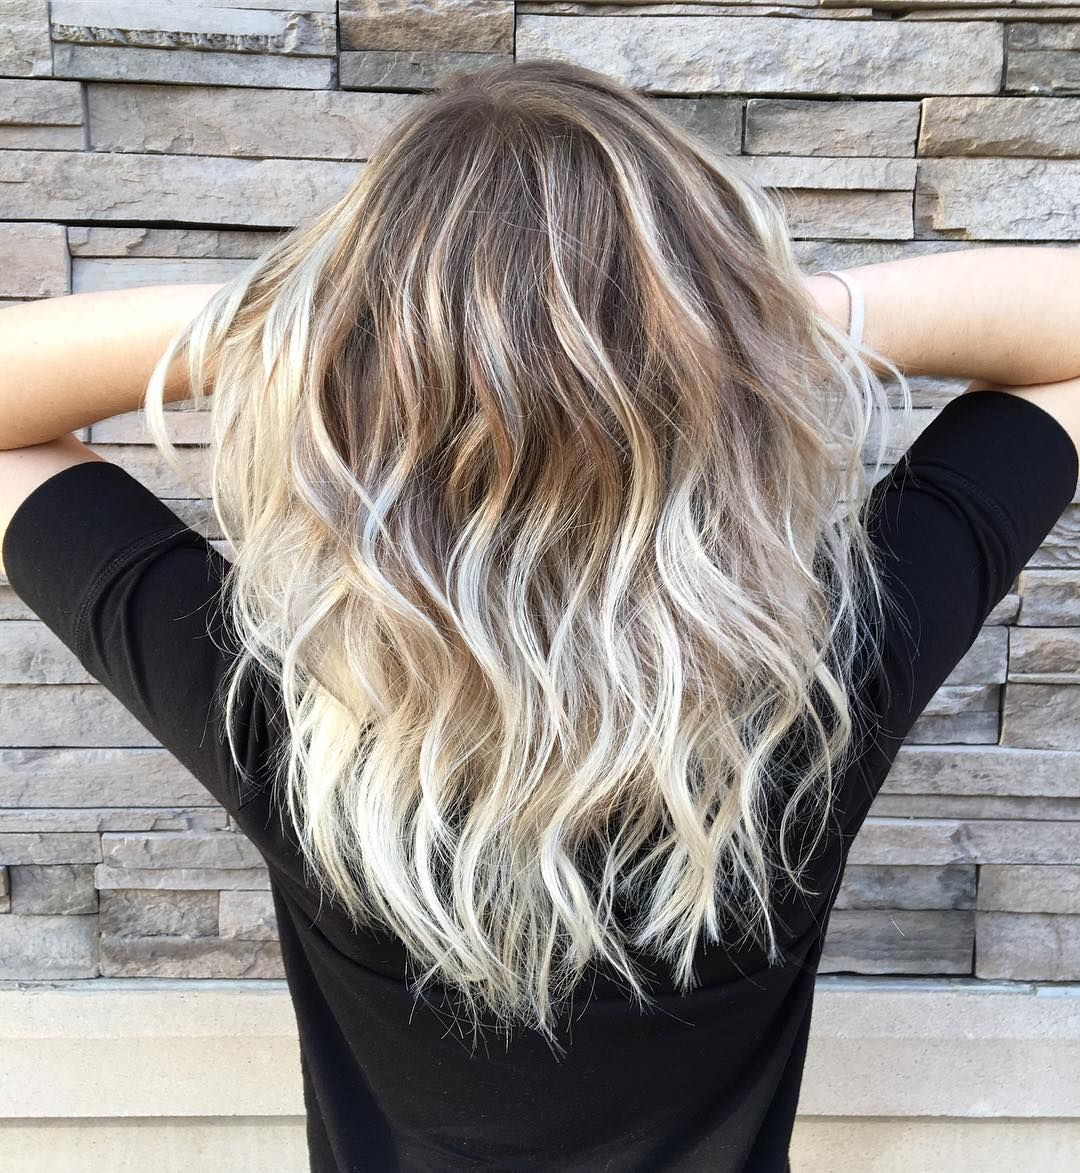 Blonde Balayage Hair Colors With Highlights: Vanilla Blonde Balayage Color Melt For Wavy Dark Blonde